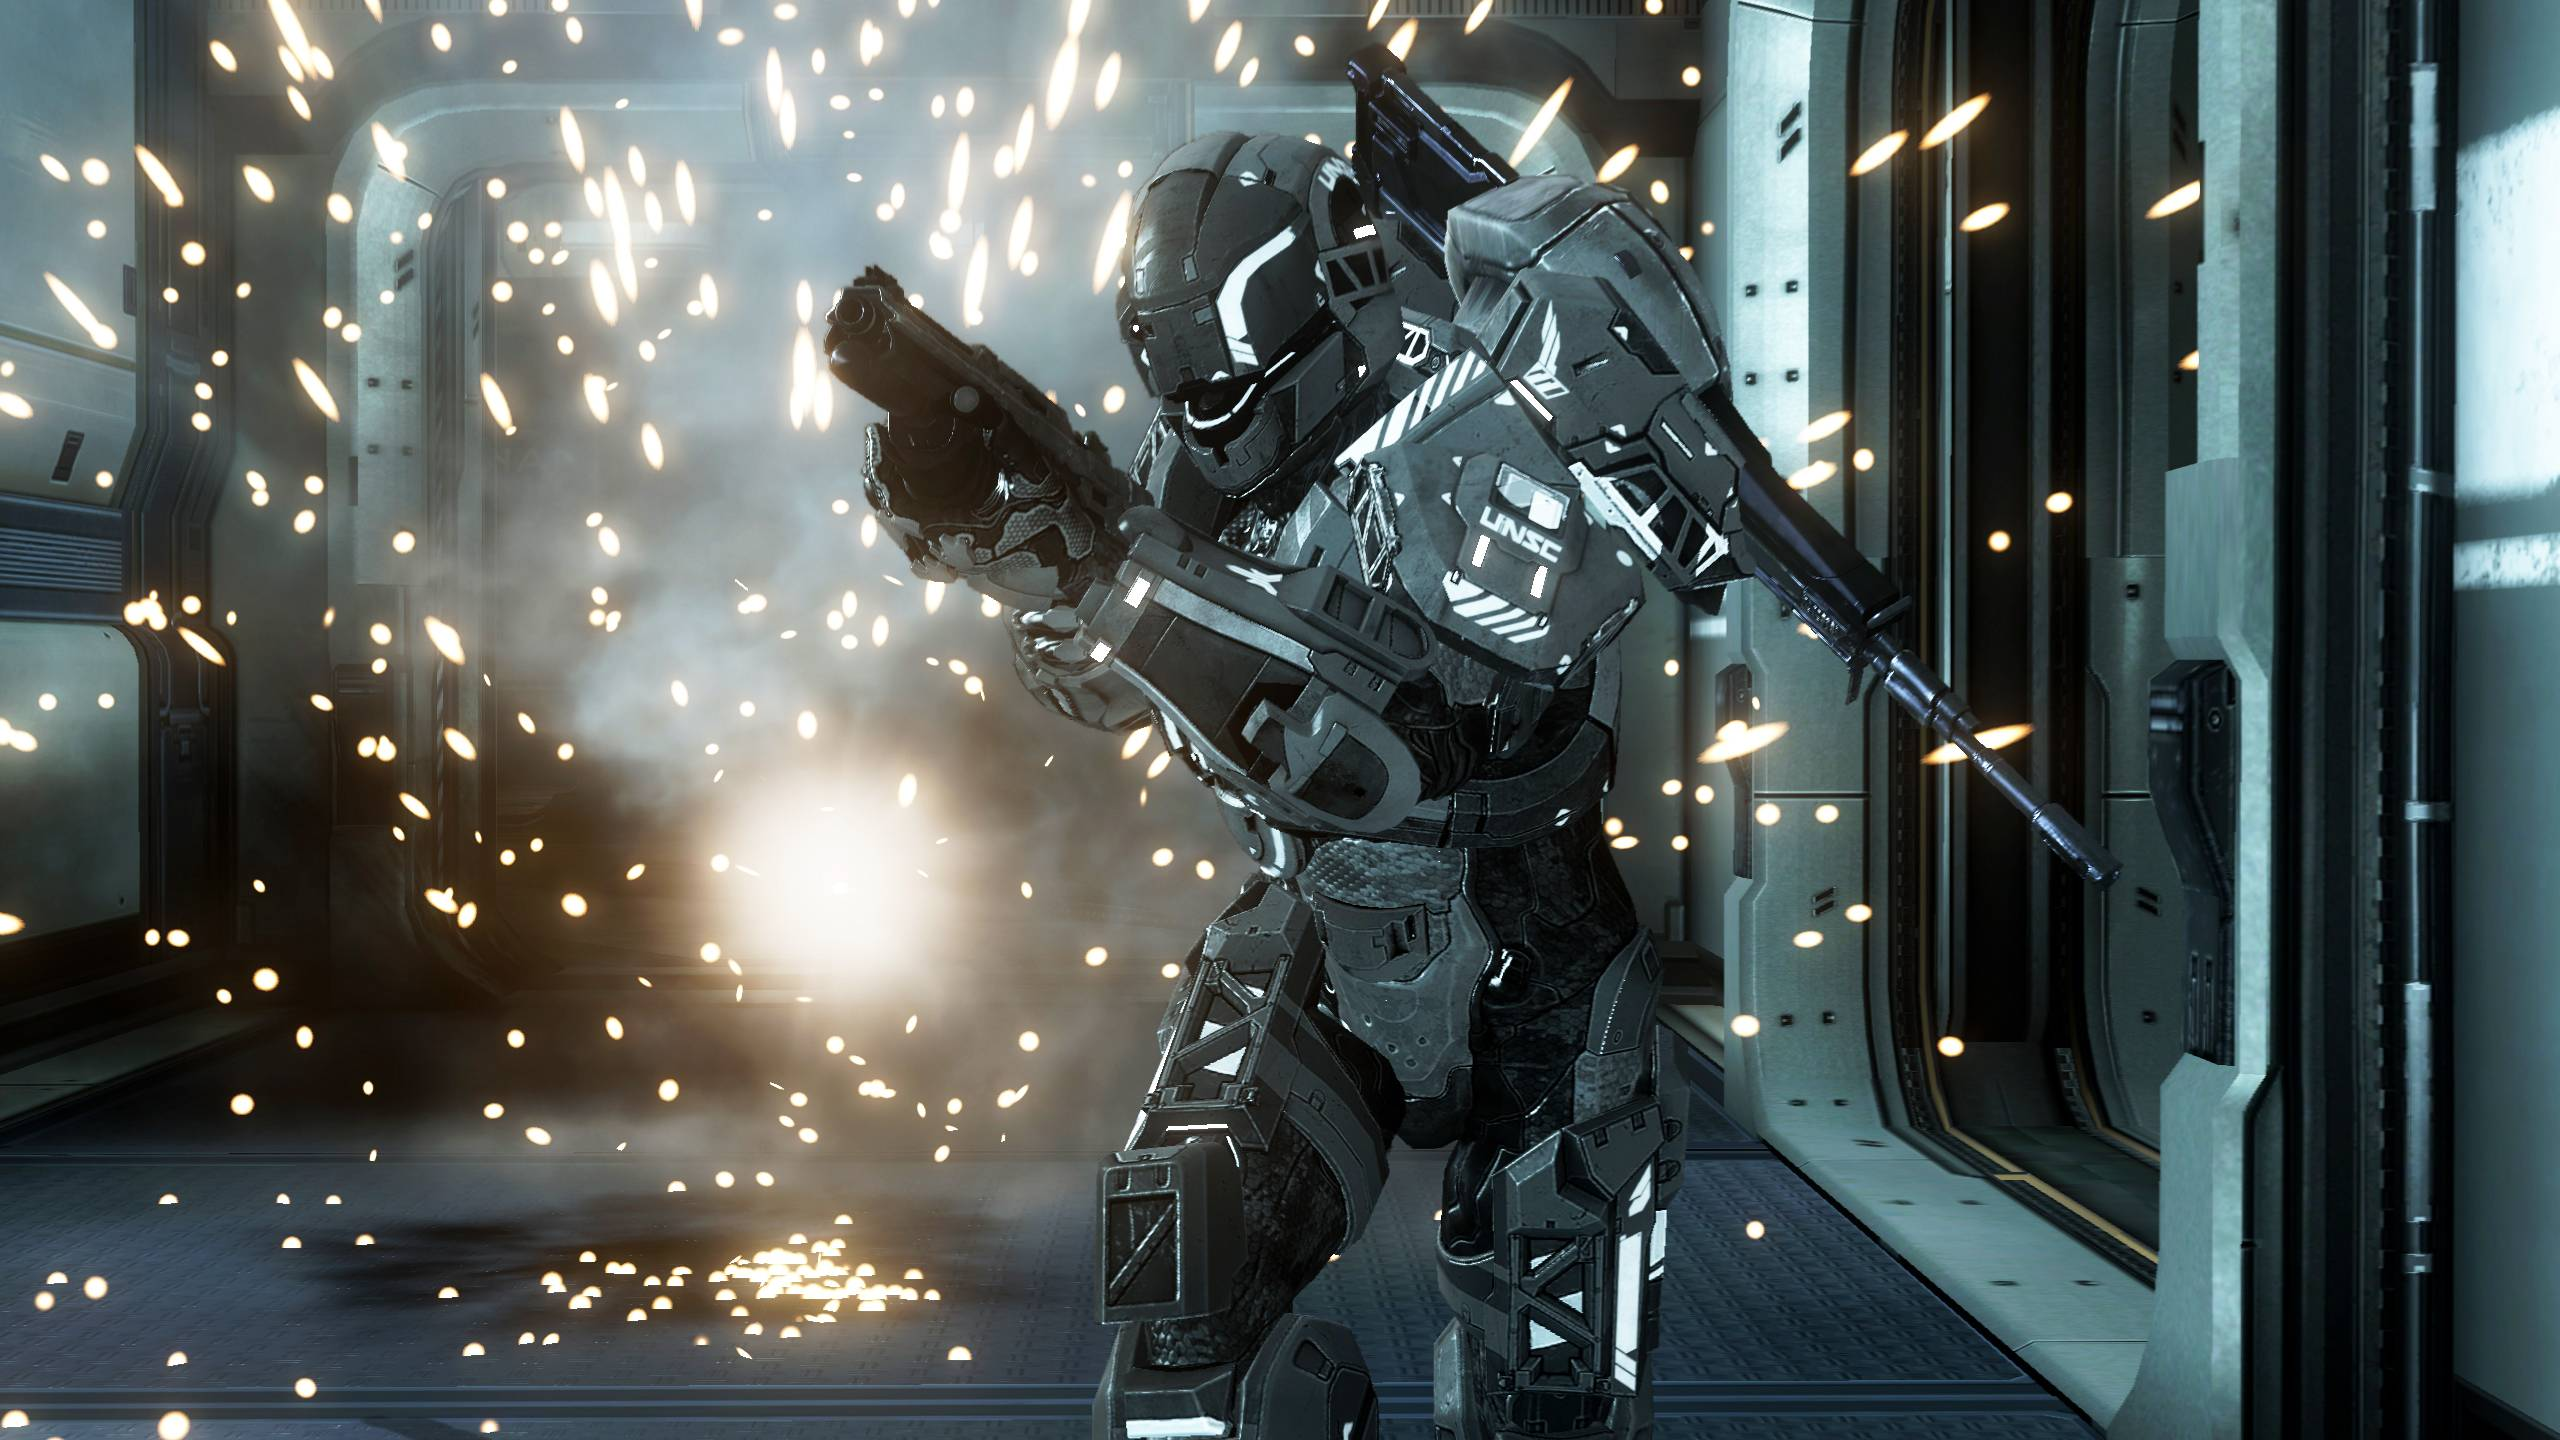 Halo 4 Wallpapers And Backgrounds